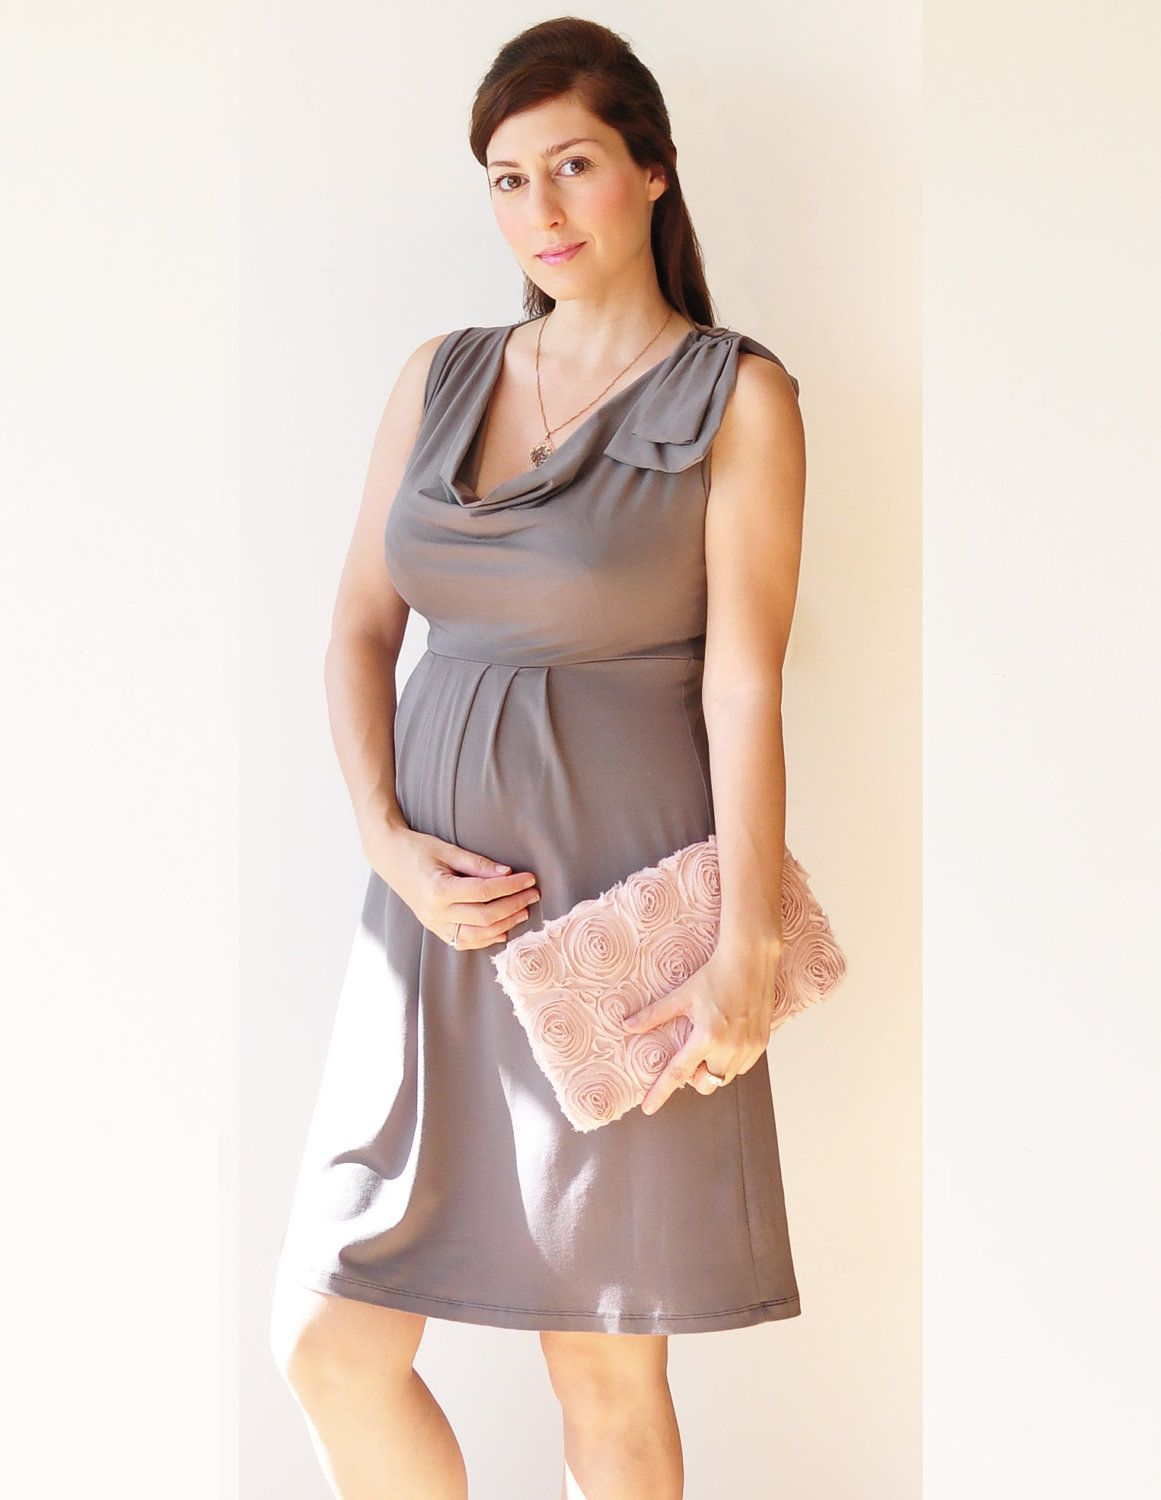 Empire Waist Maternity Dress. Maternity Clothes, Cute Pregnancy ...